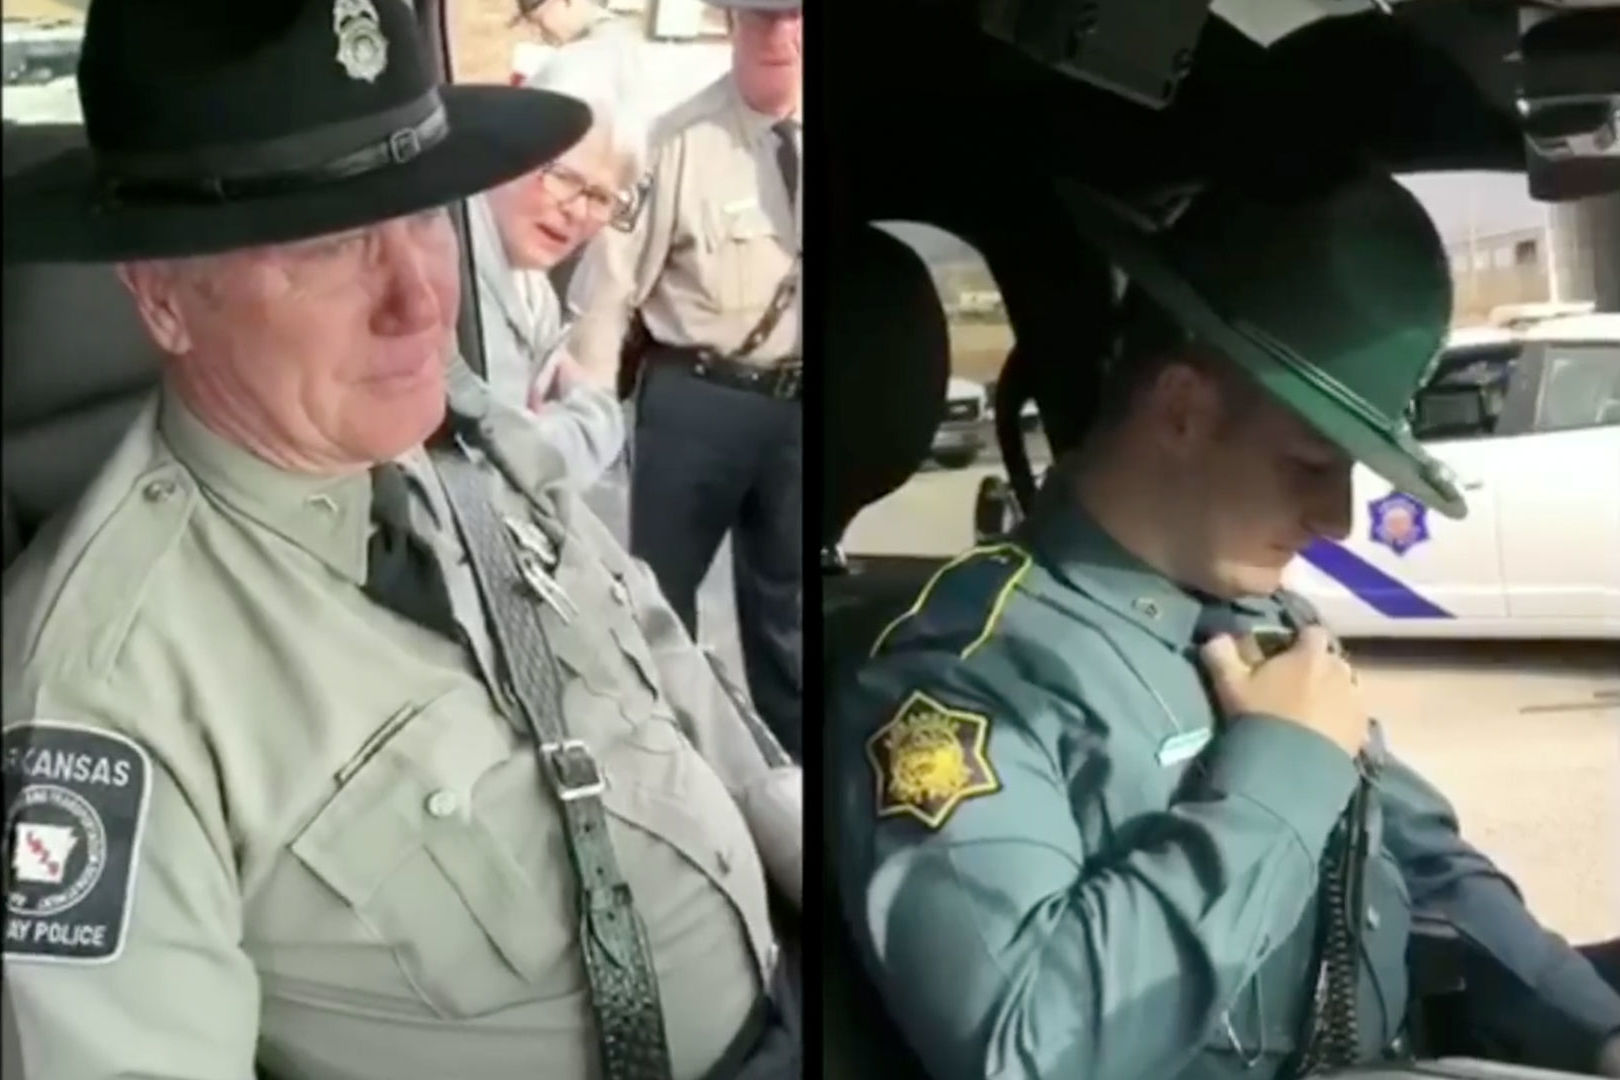 Son Answers Retiring Police Officer's Final Radio Call in Emotional Exchange